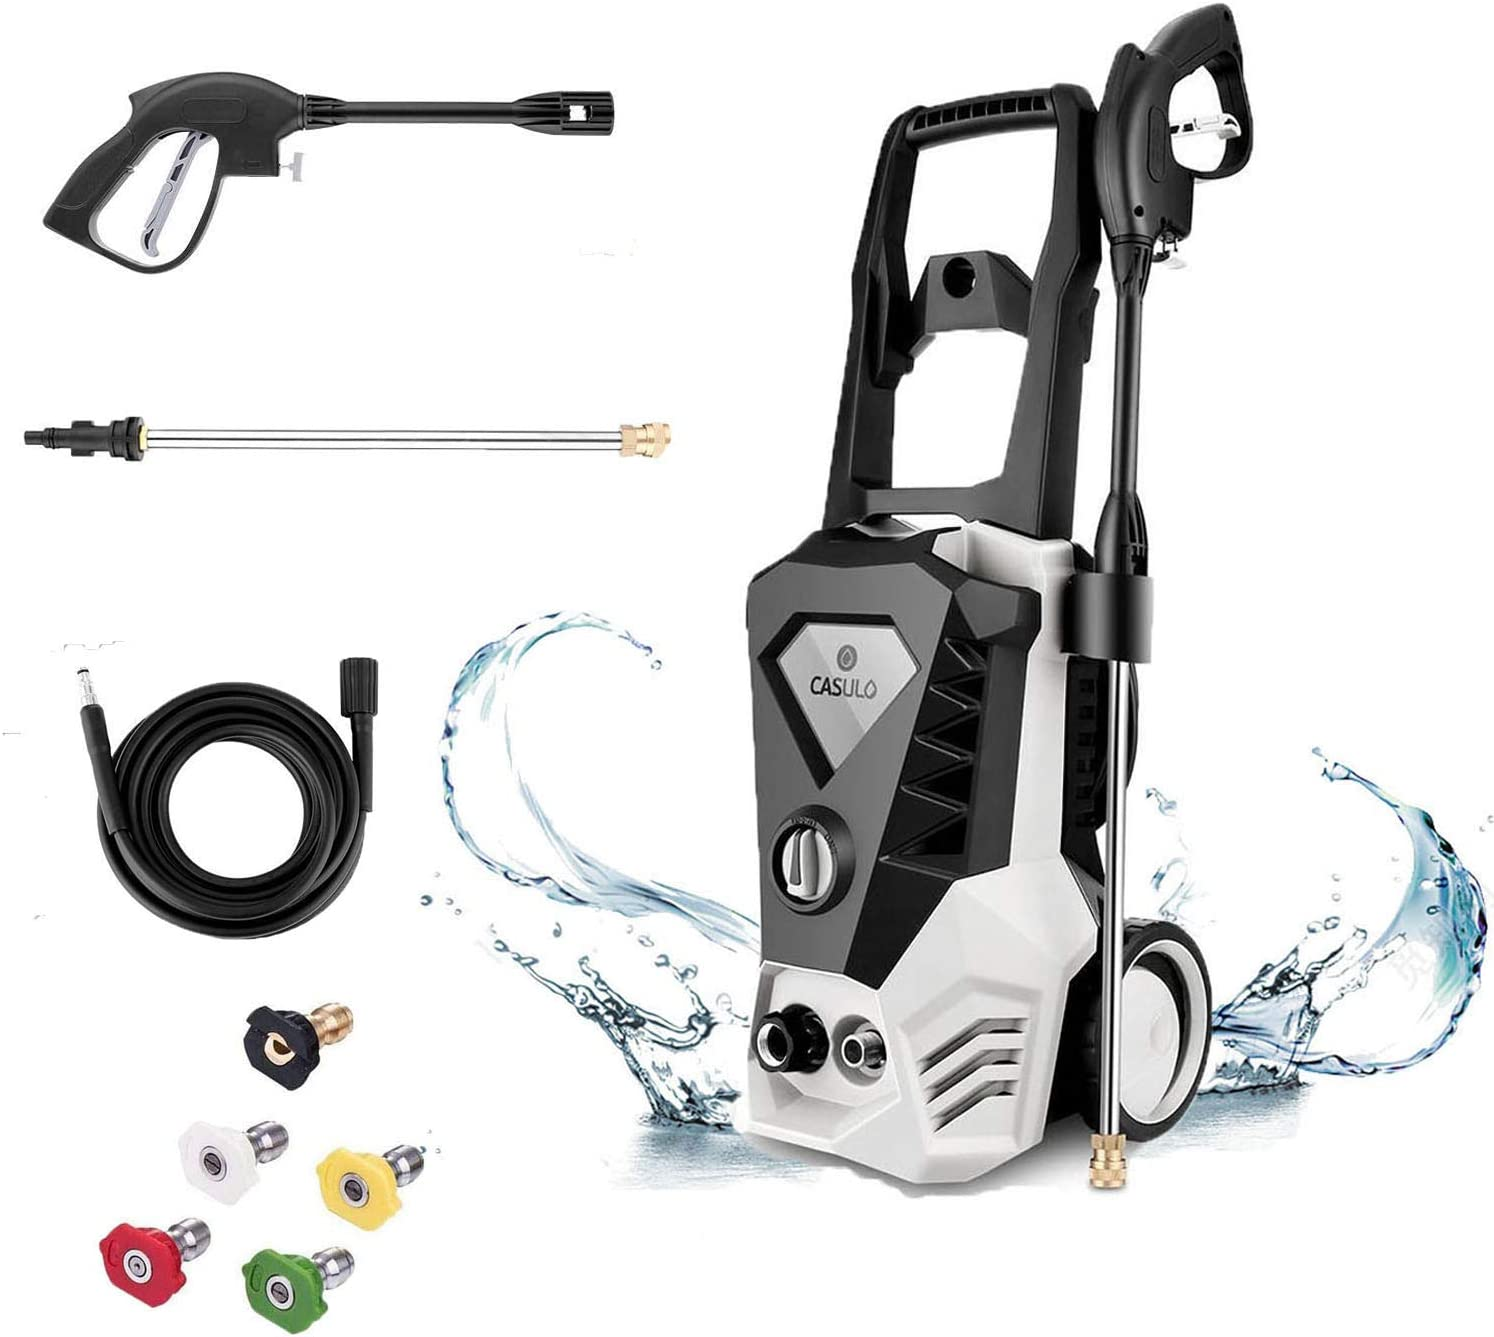 DREAMVAN Electric Max 79% OFF Pressure Washer 3500PSI High 2.6GPM Ranking TOP4 Wash Power